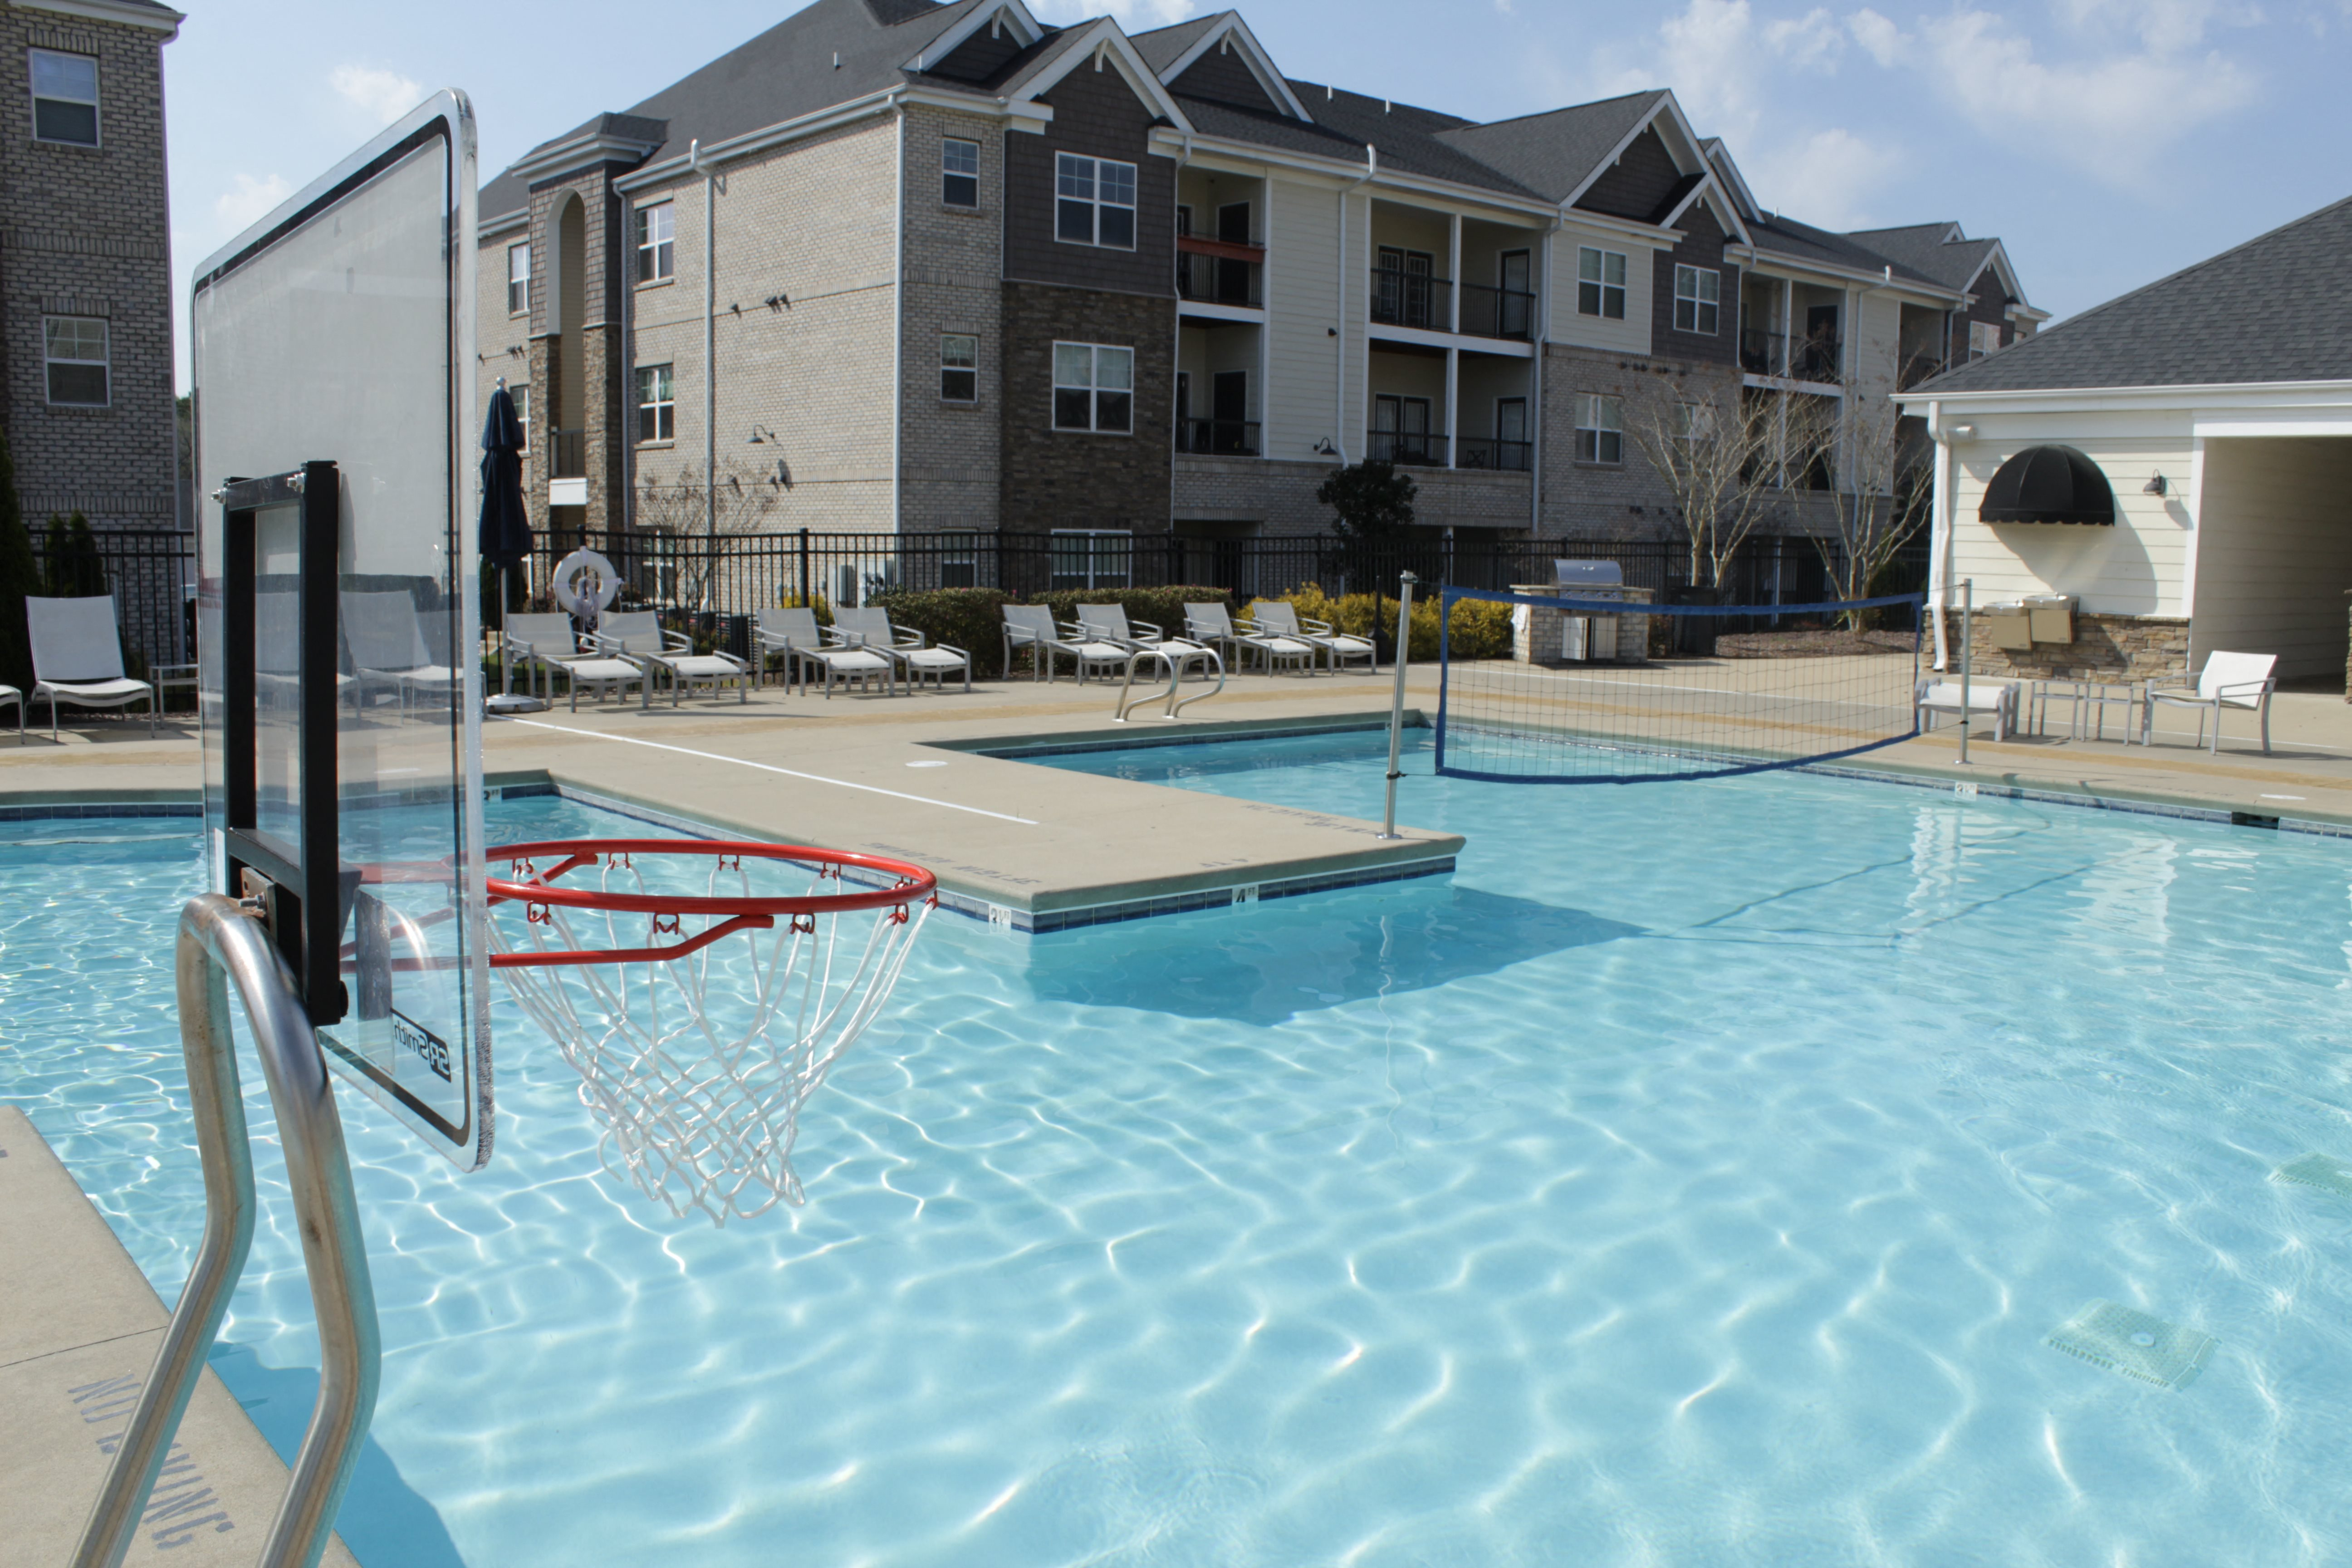 West End at Fayetteville's Sparkling Swimming Pool